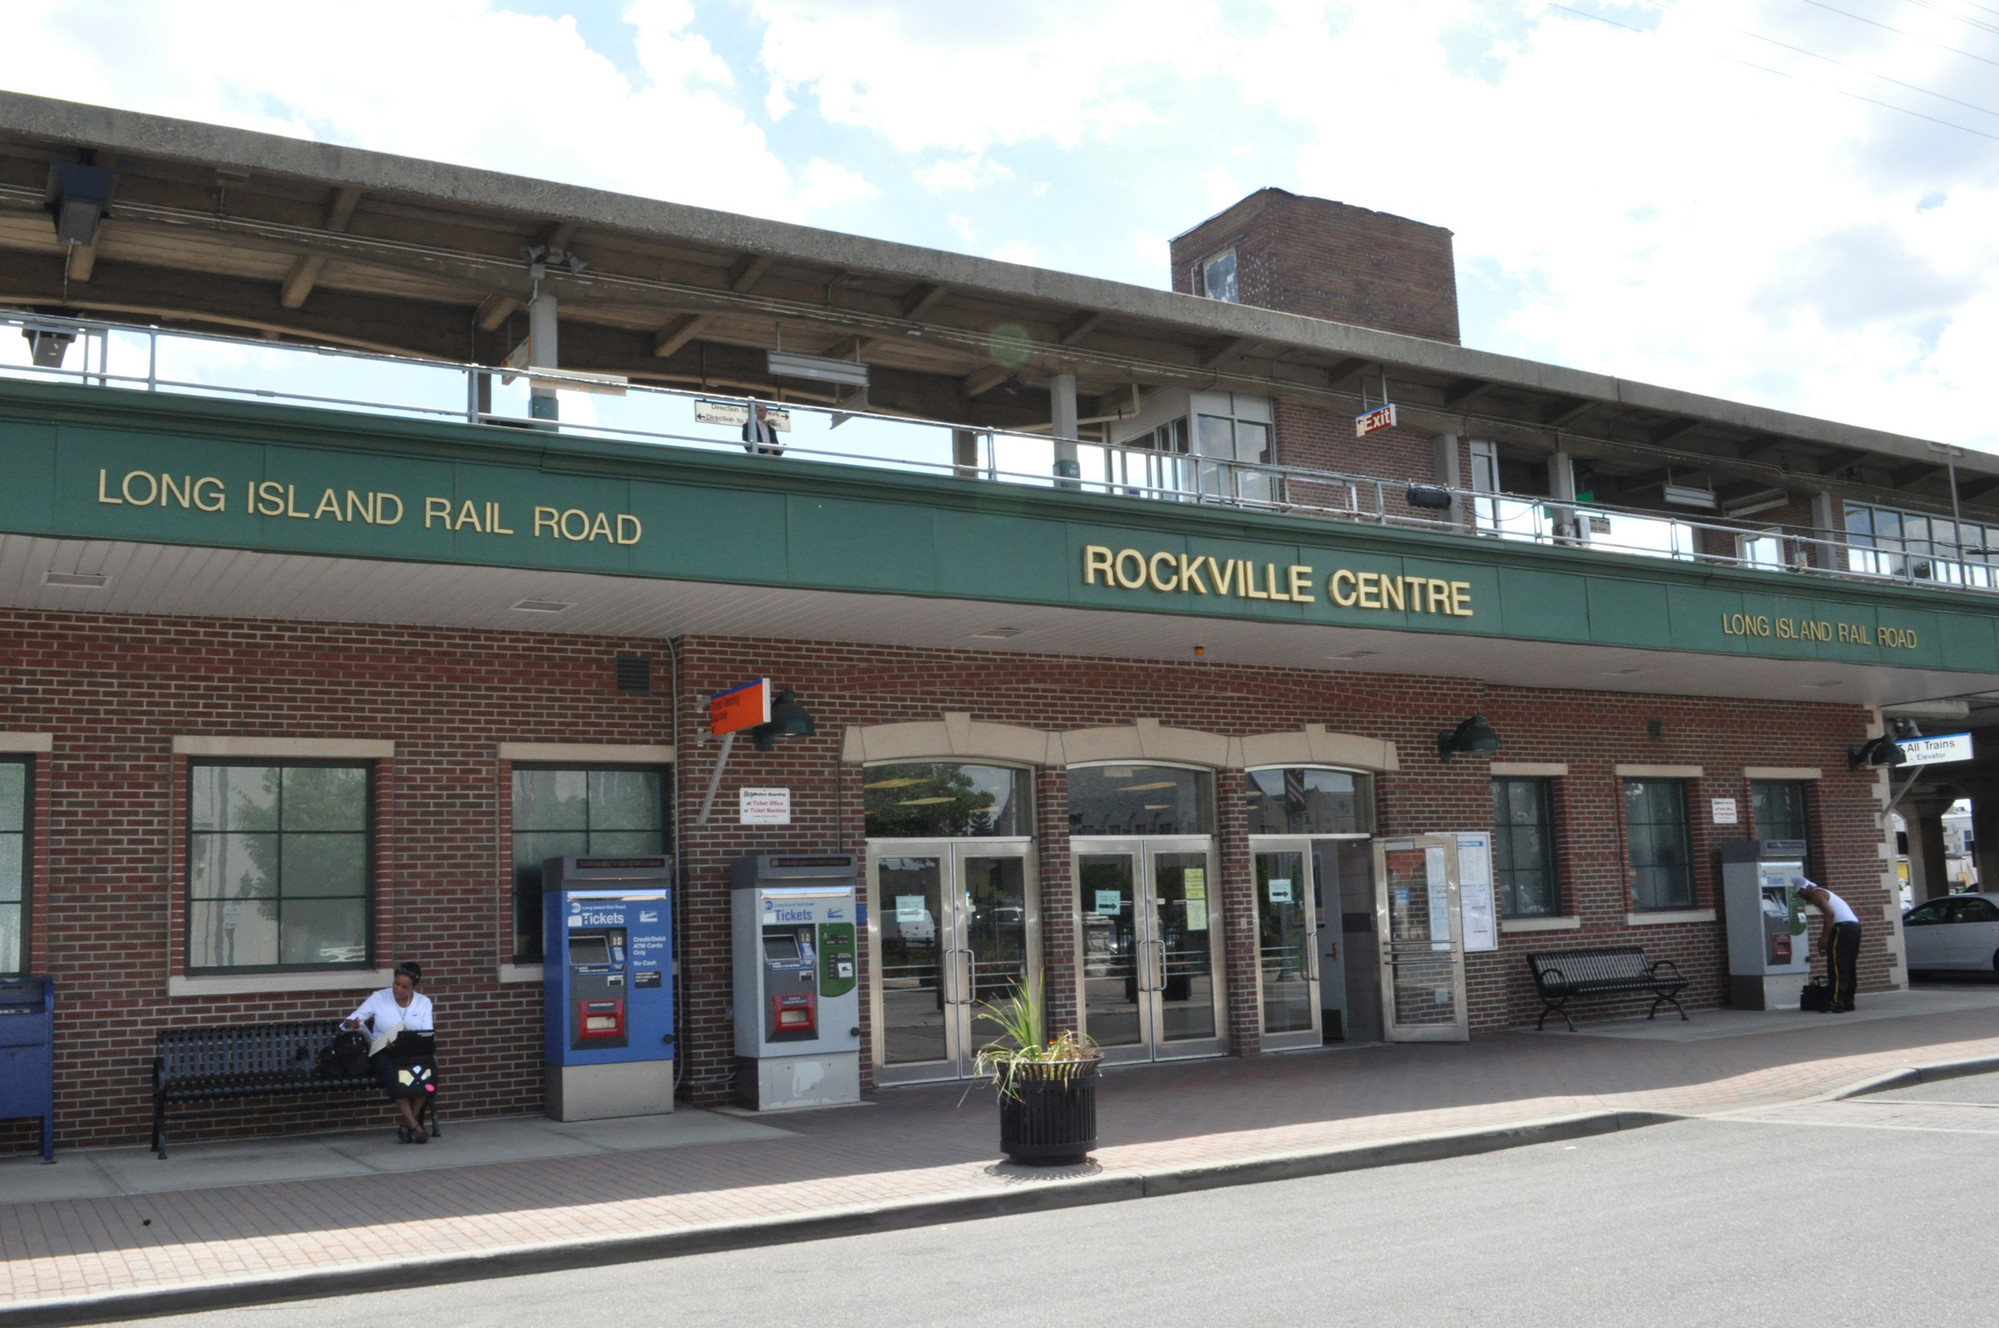 Picture of the front of the Rockville Centre LIRR Train Station